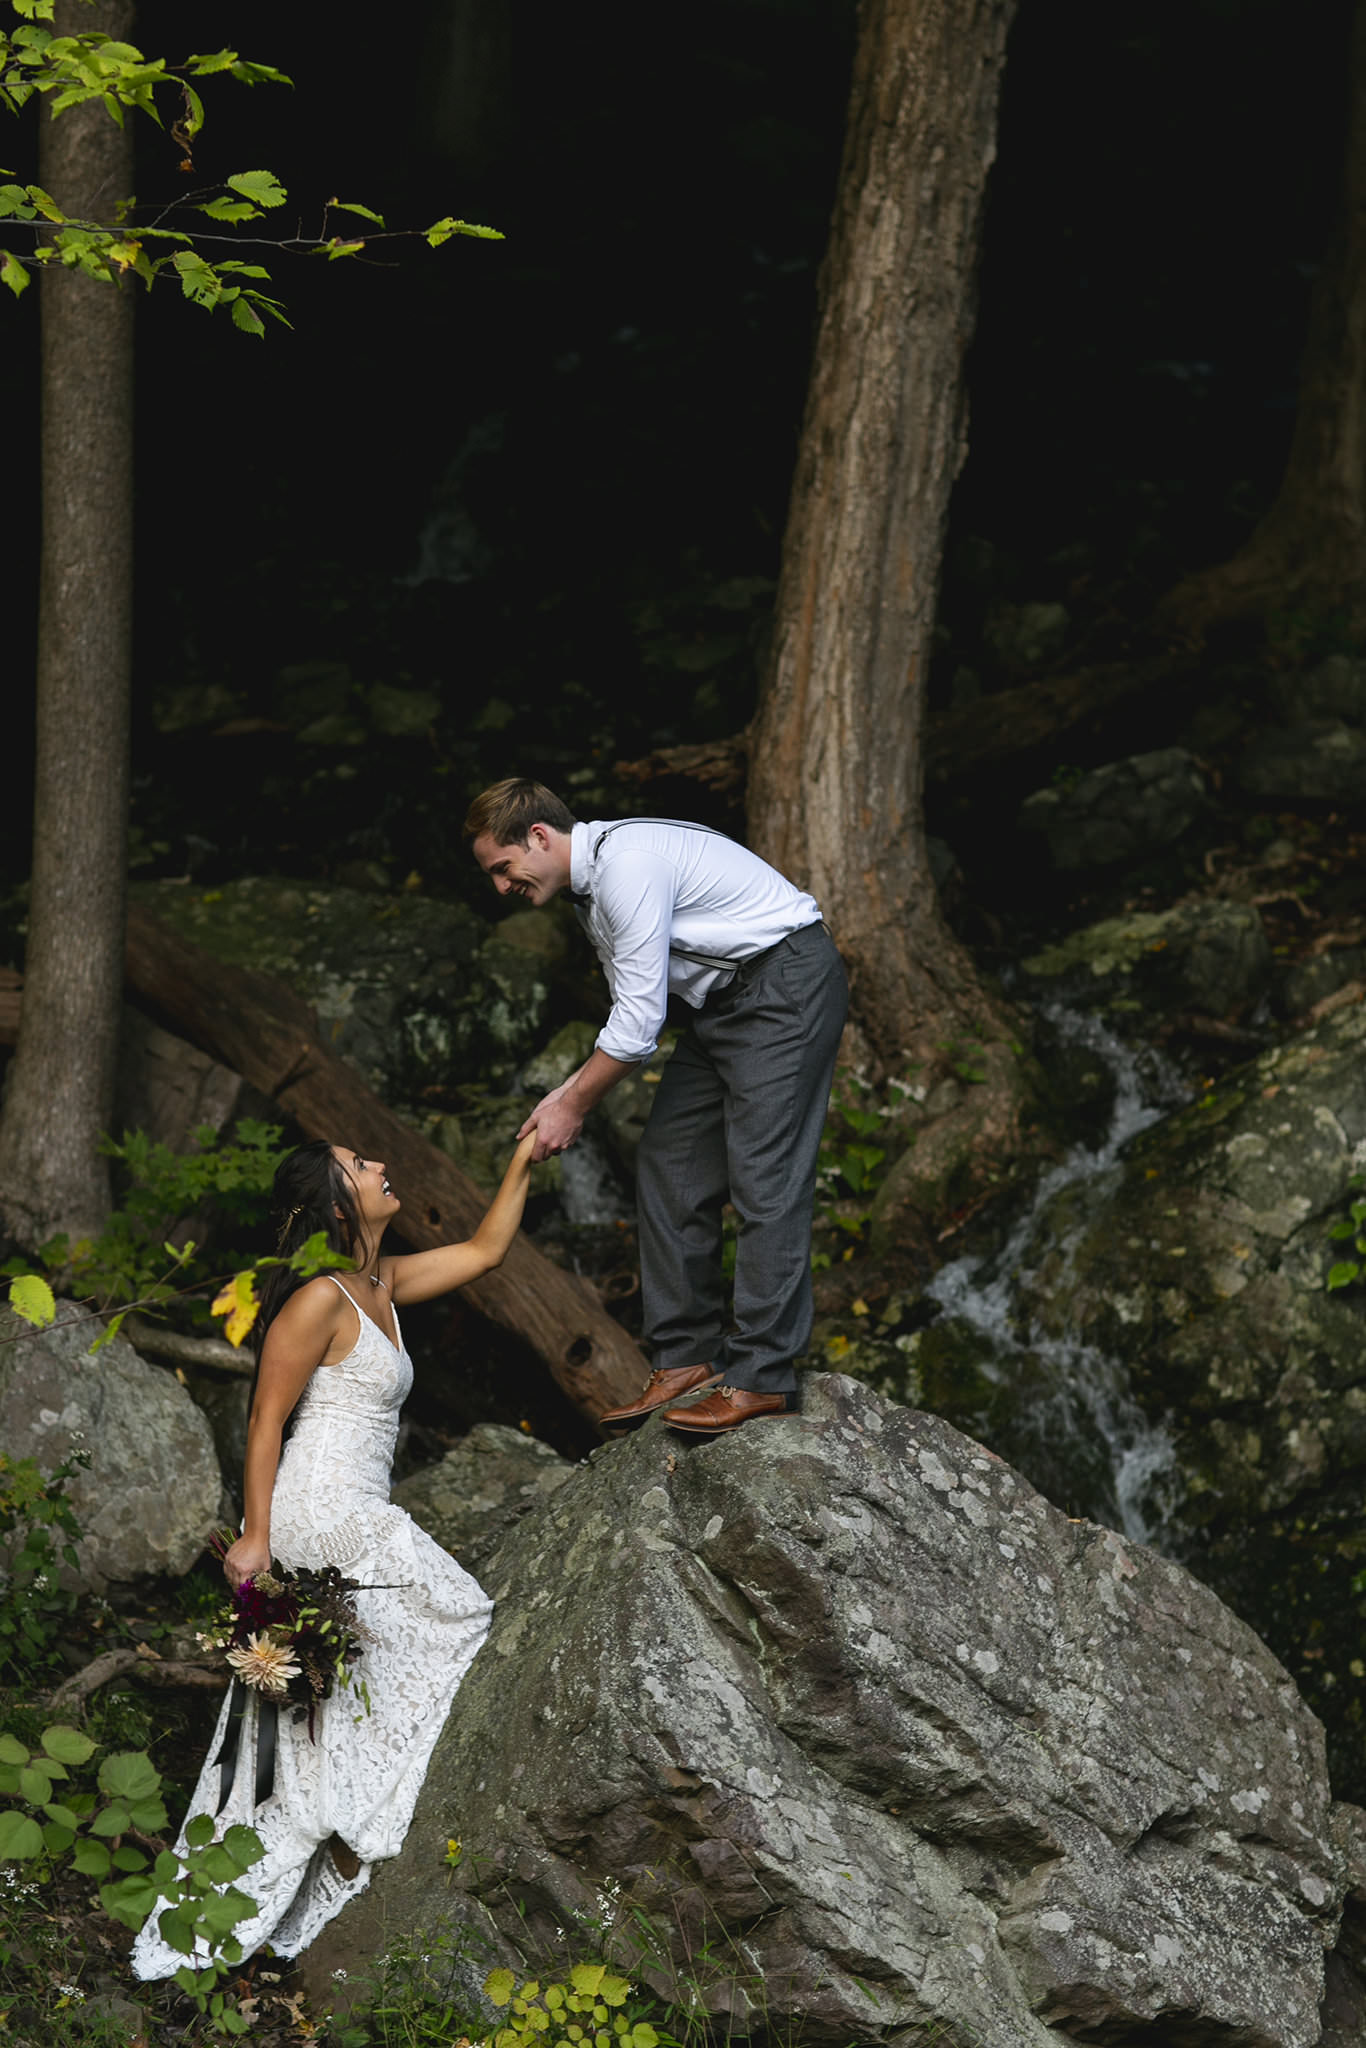 elopement location ideas